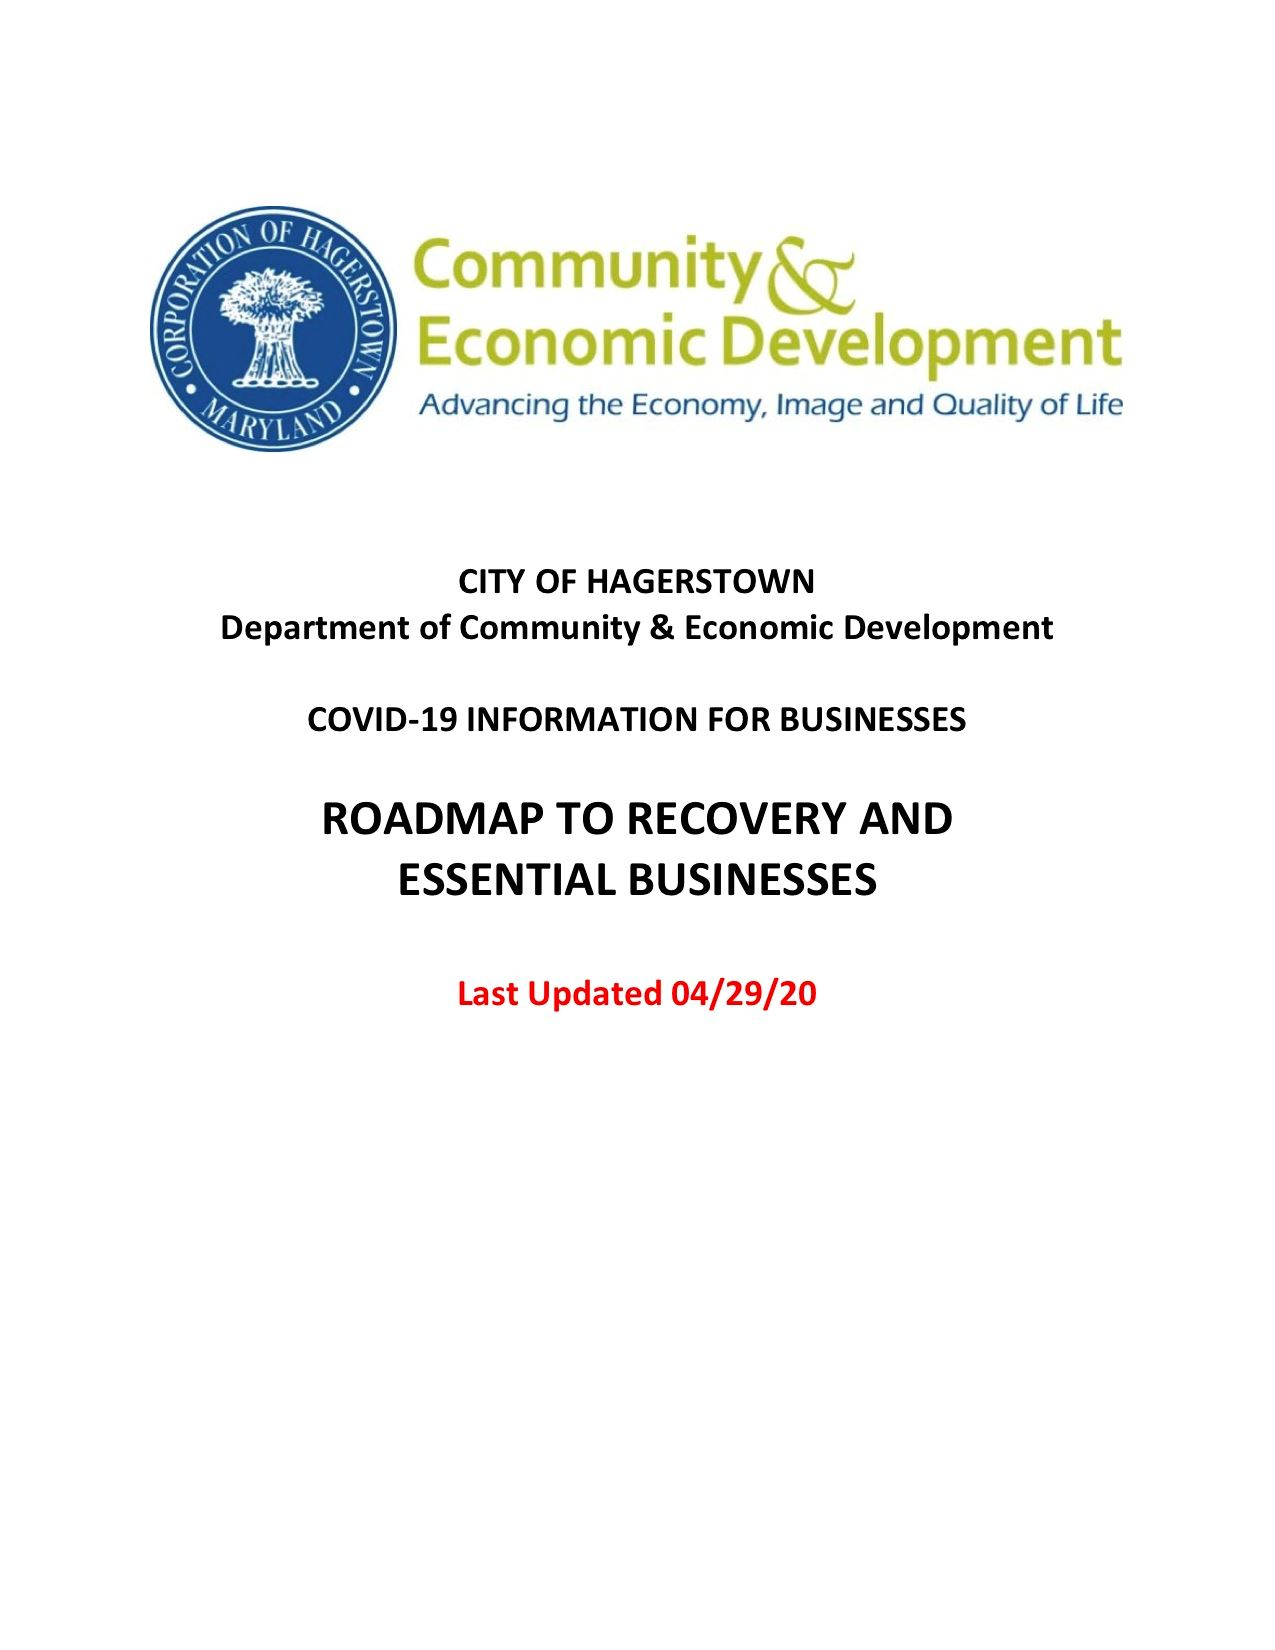 Recovery_Essential Business Information